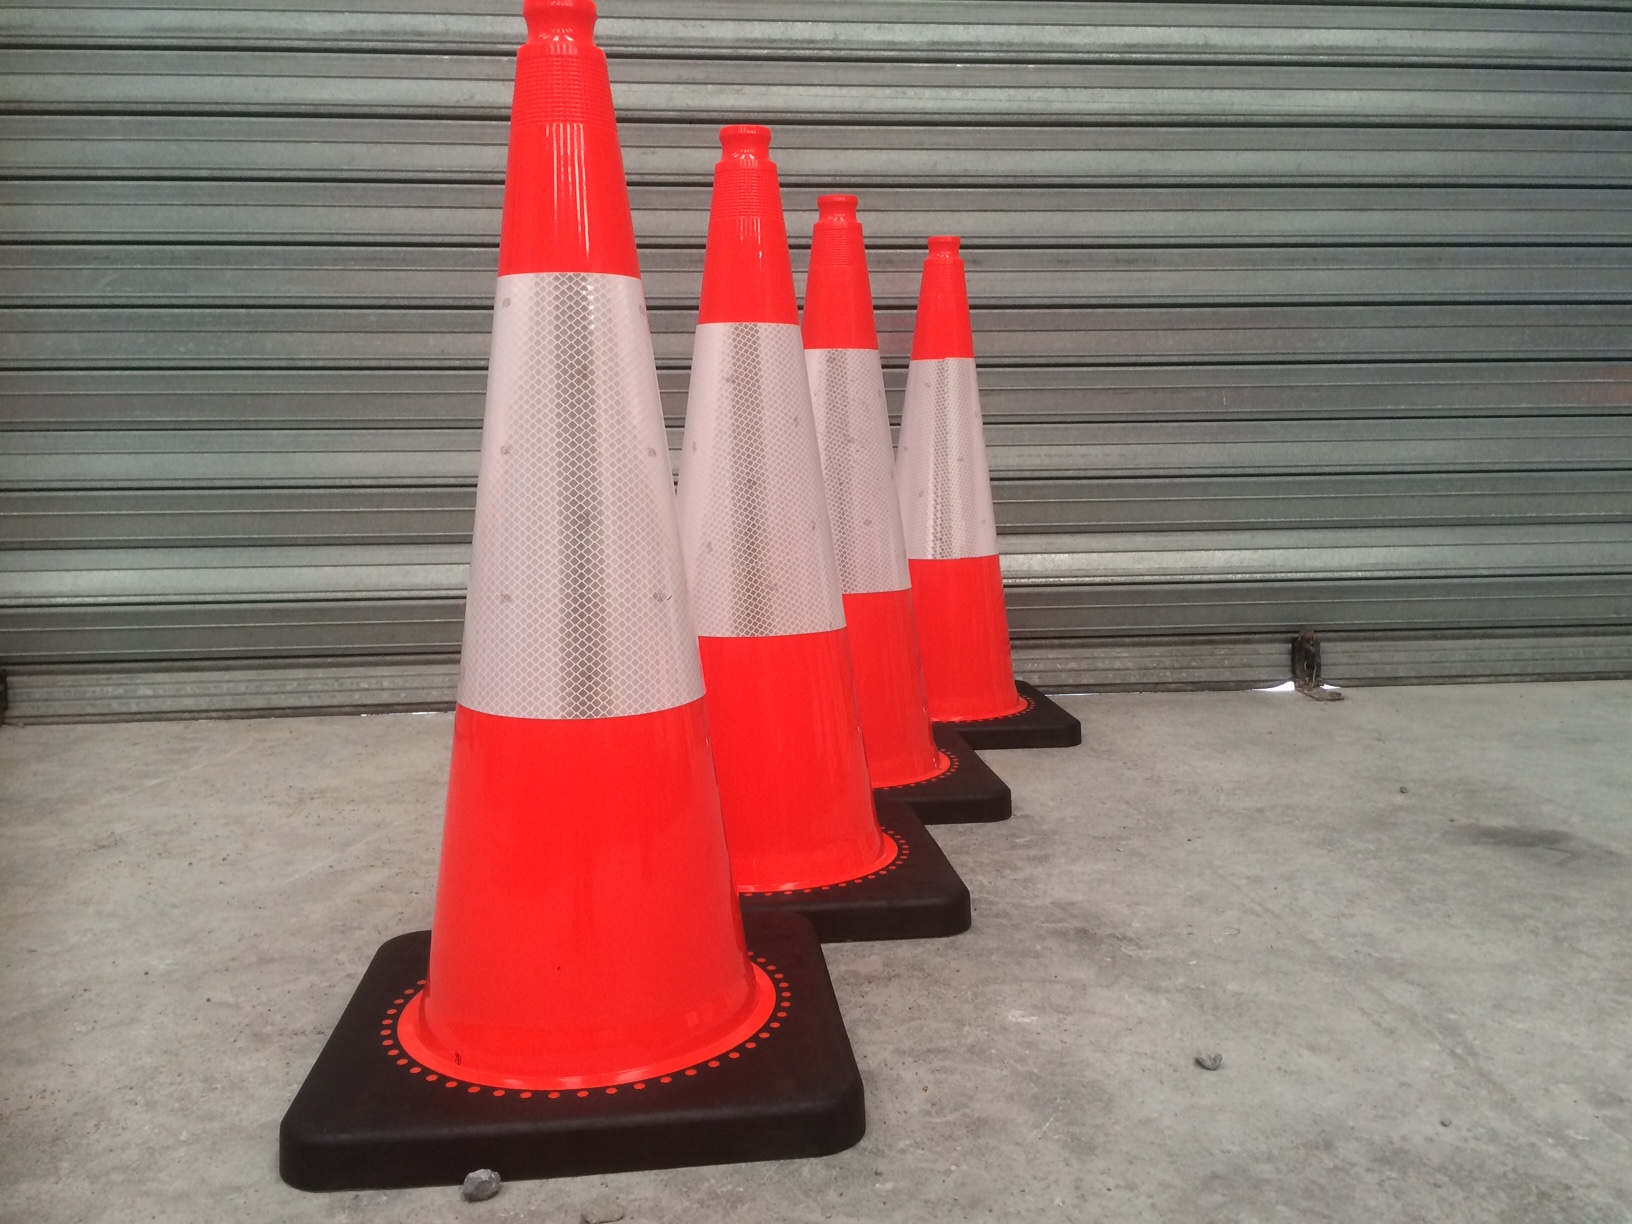 PVC Indestructible Cone from Ernco-Group